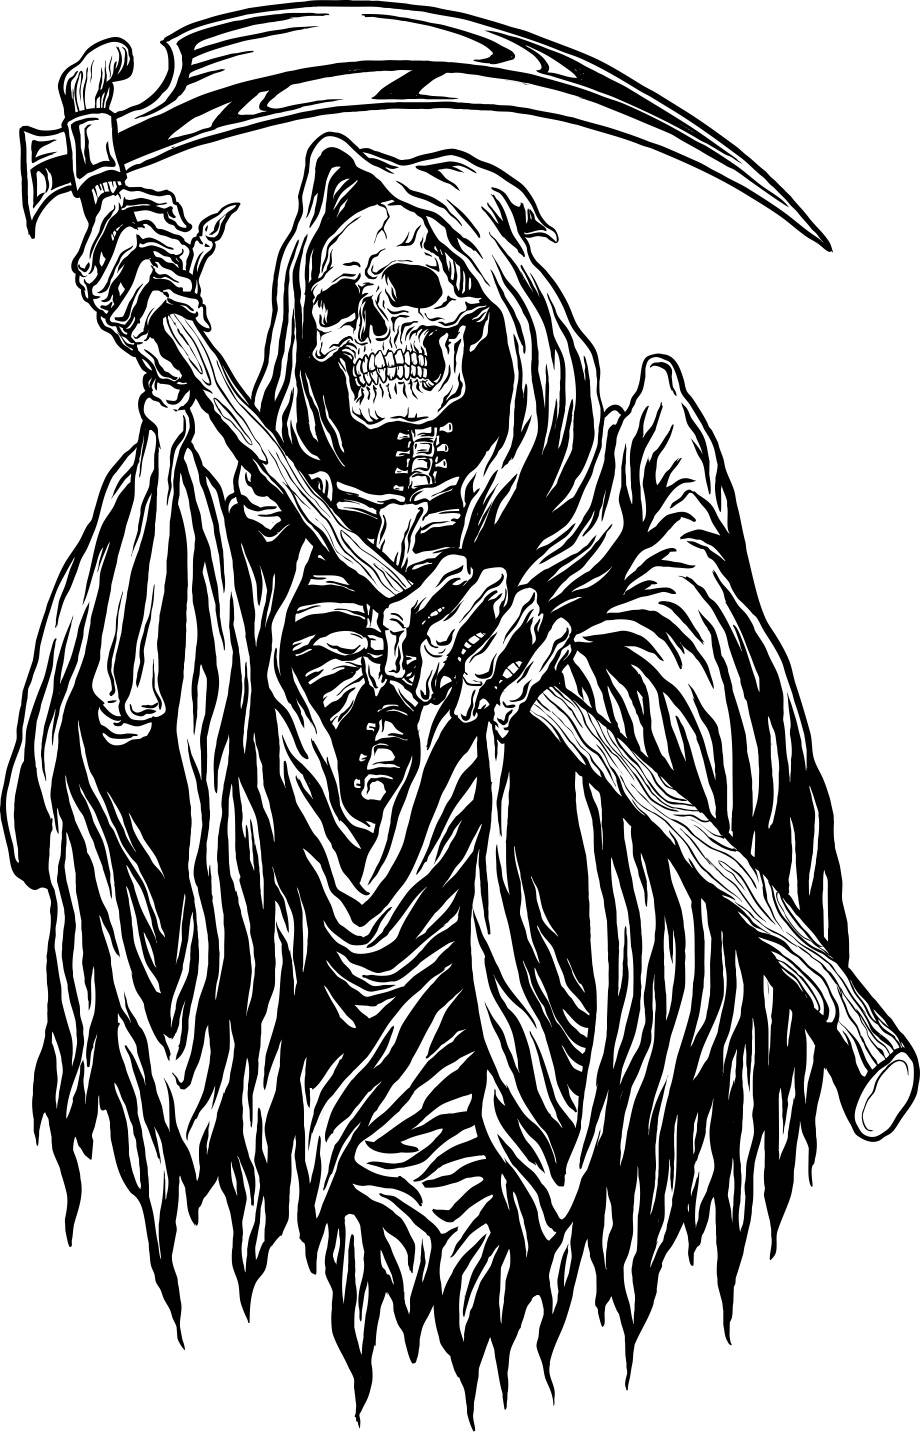 Grim Reaper Wall Decals For Festive Seasons Halloween